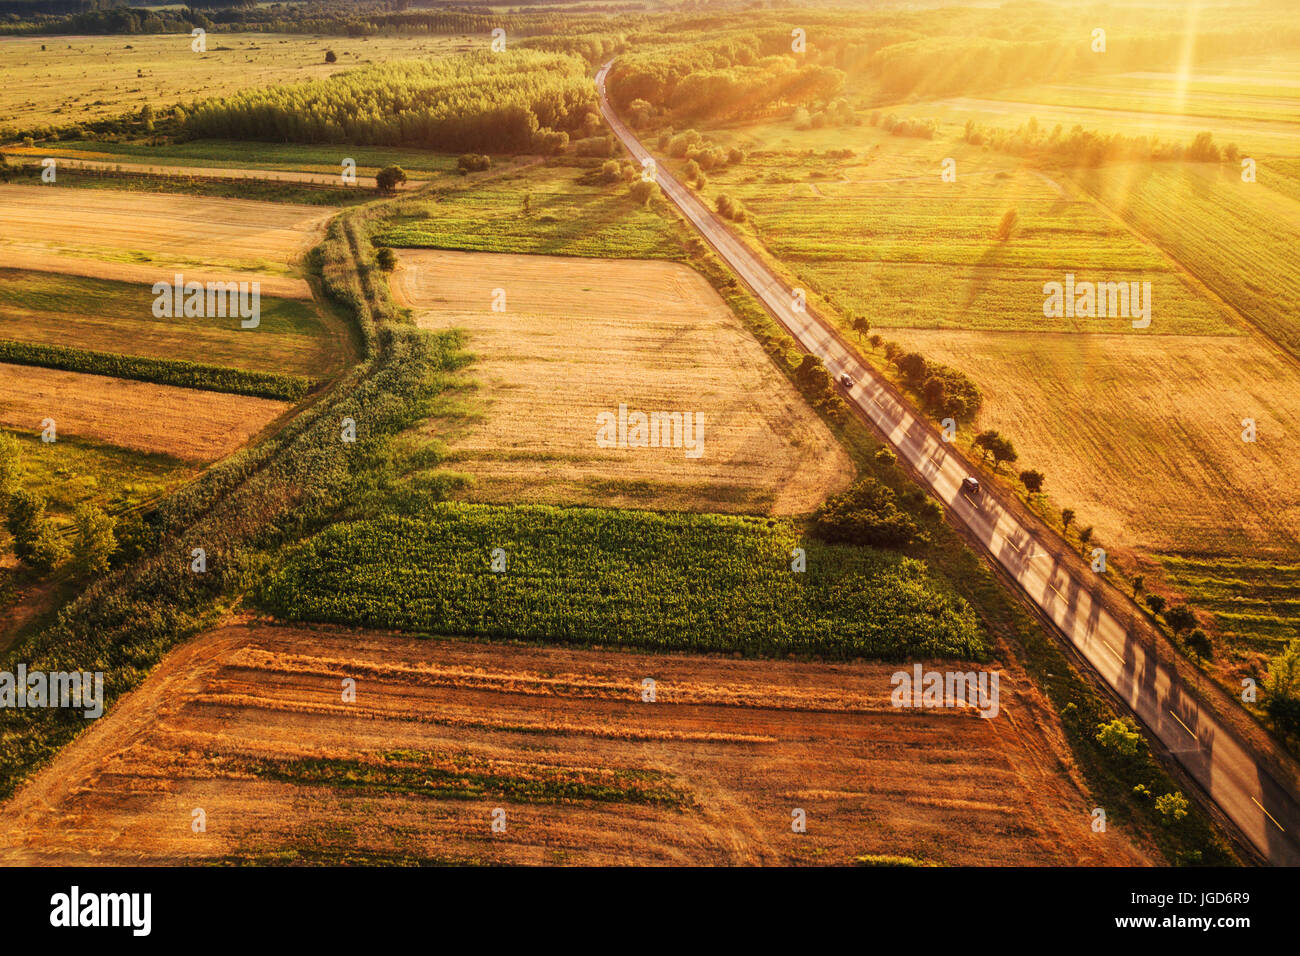 Beautiful aerial view of countryside and cultivated fields in sunset, drone point of view - Stock Image